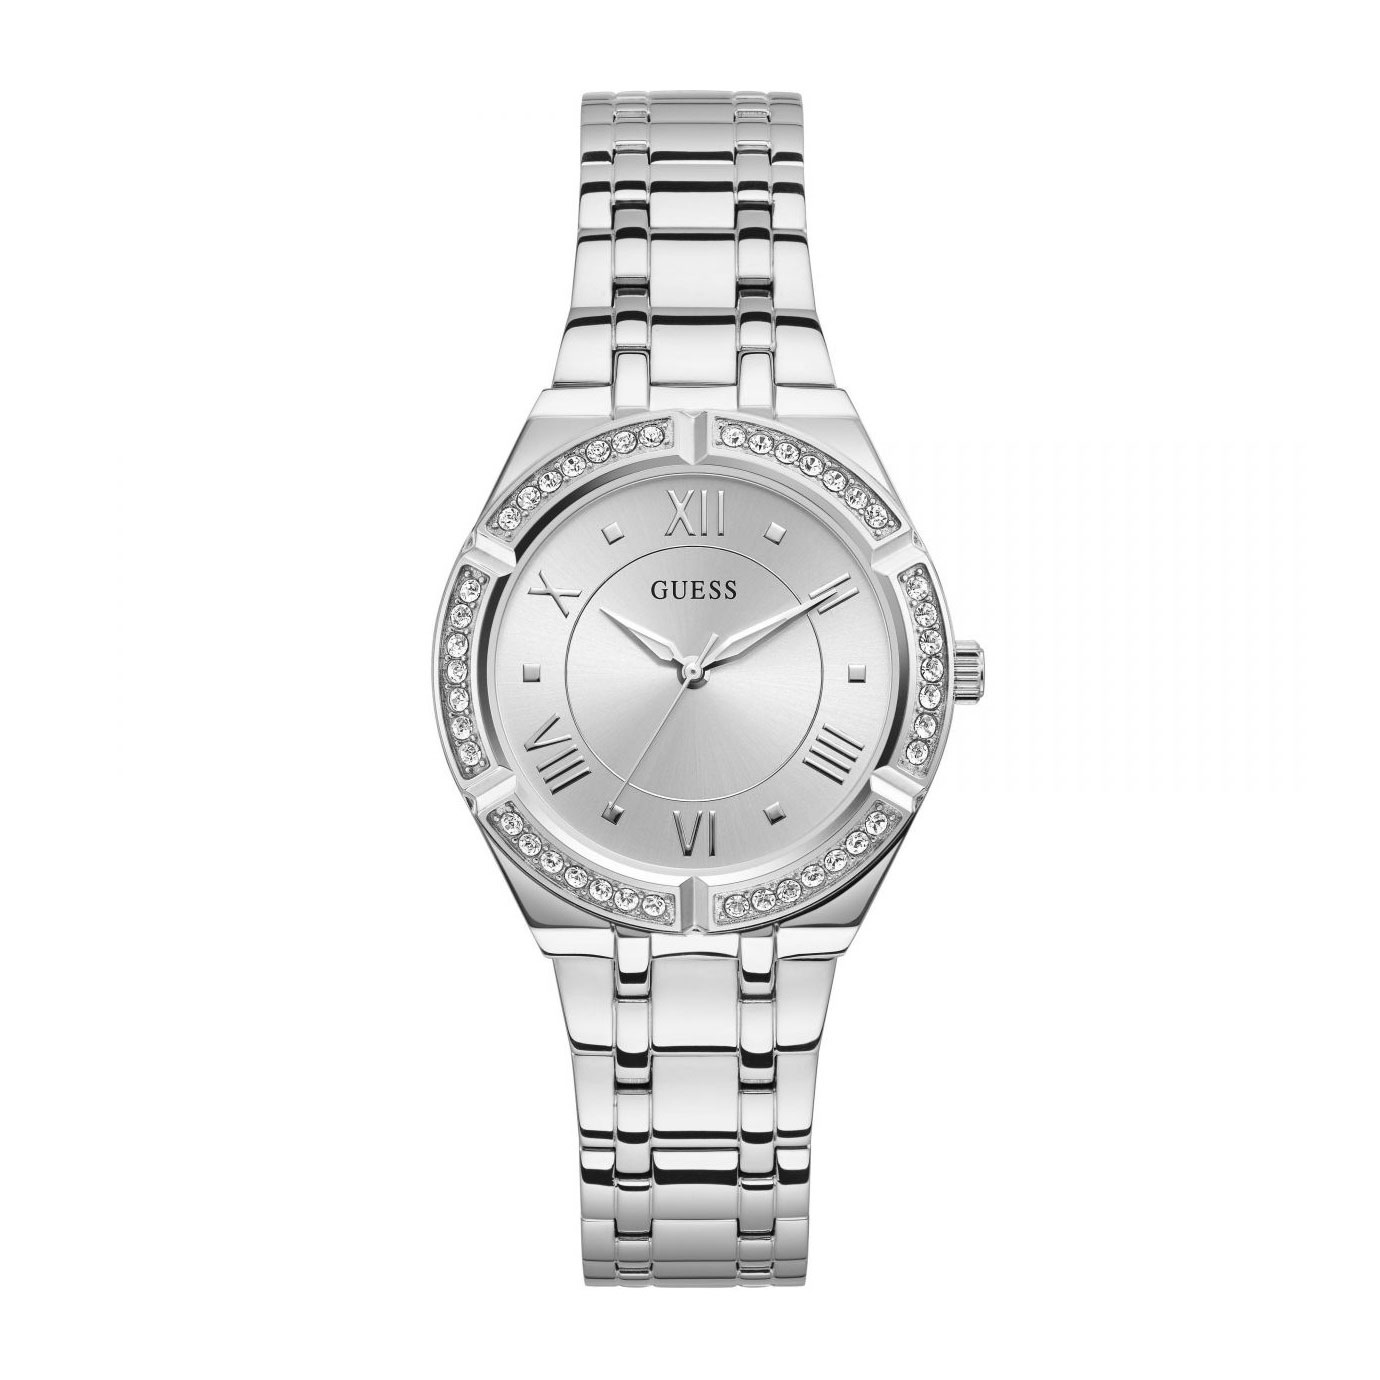 GUESS Relojes Cosmo GW0033L1